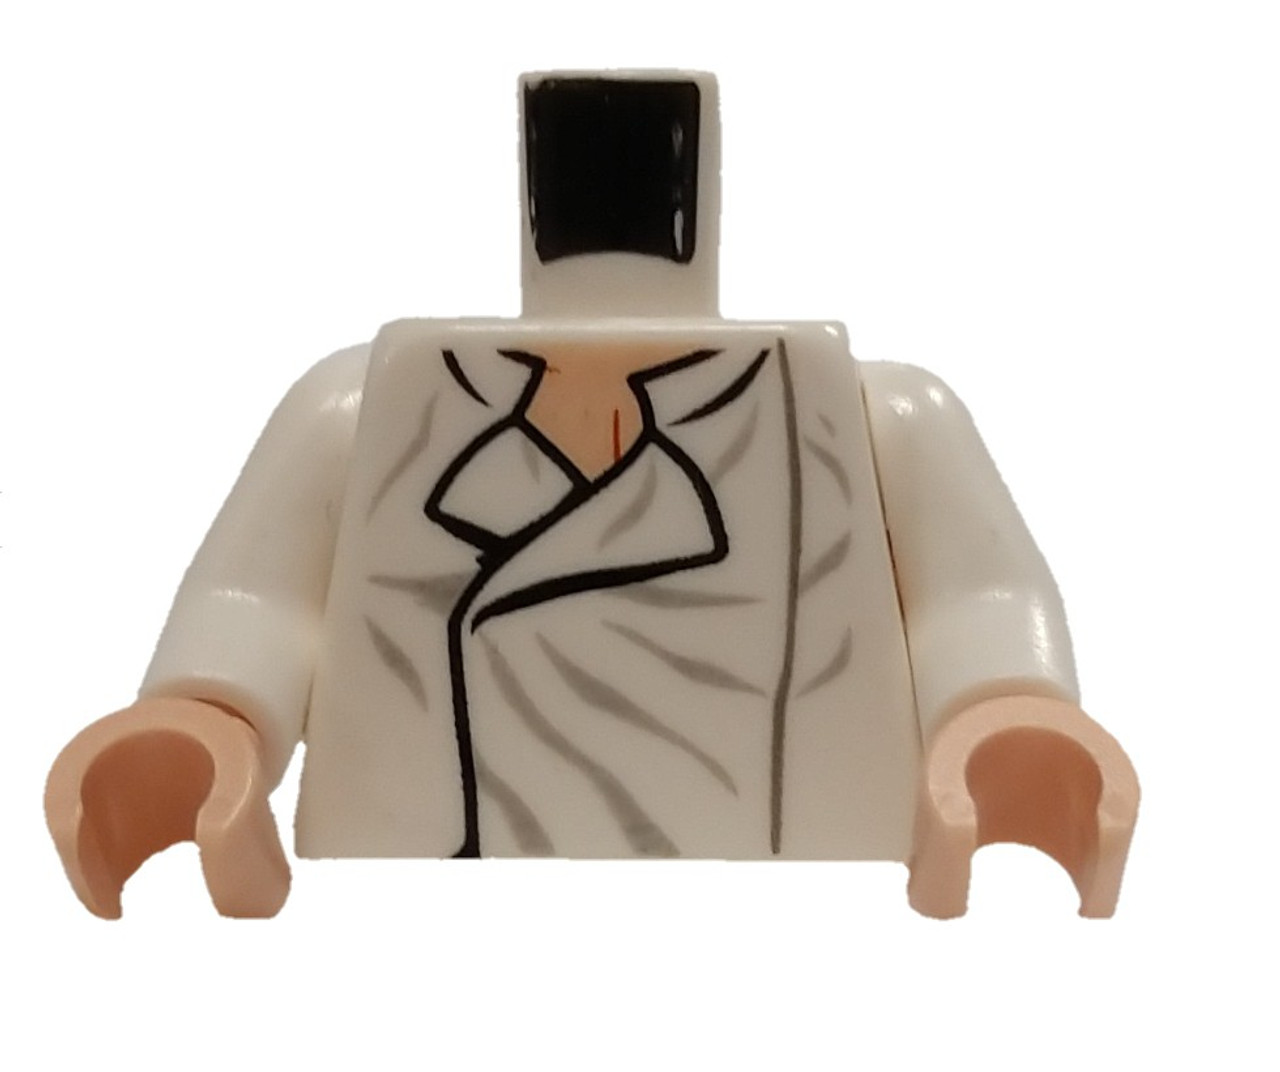 LEGO NEW WHITE MINIFIGURE TORSO OPEN COLLAR SHIRT WITH WRINKLES FLESH HANDS